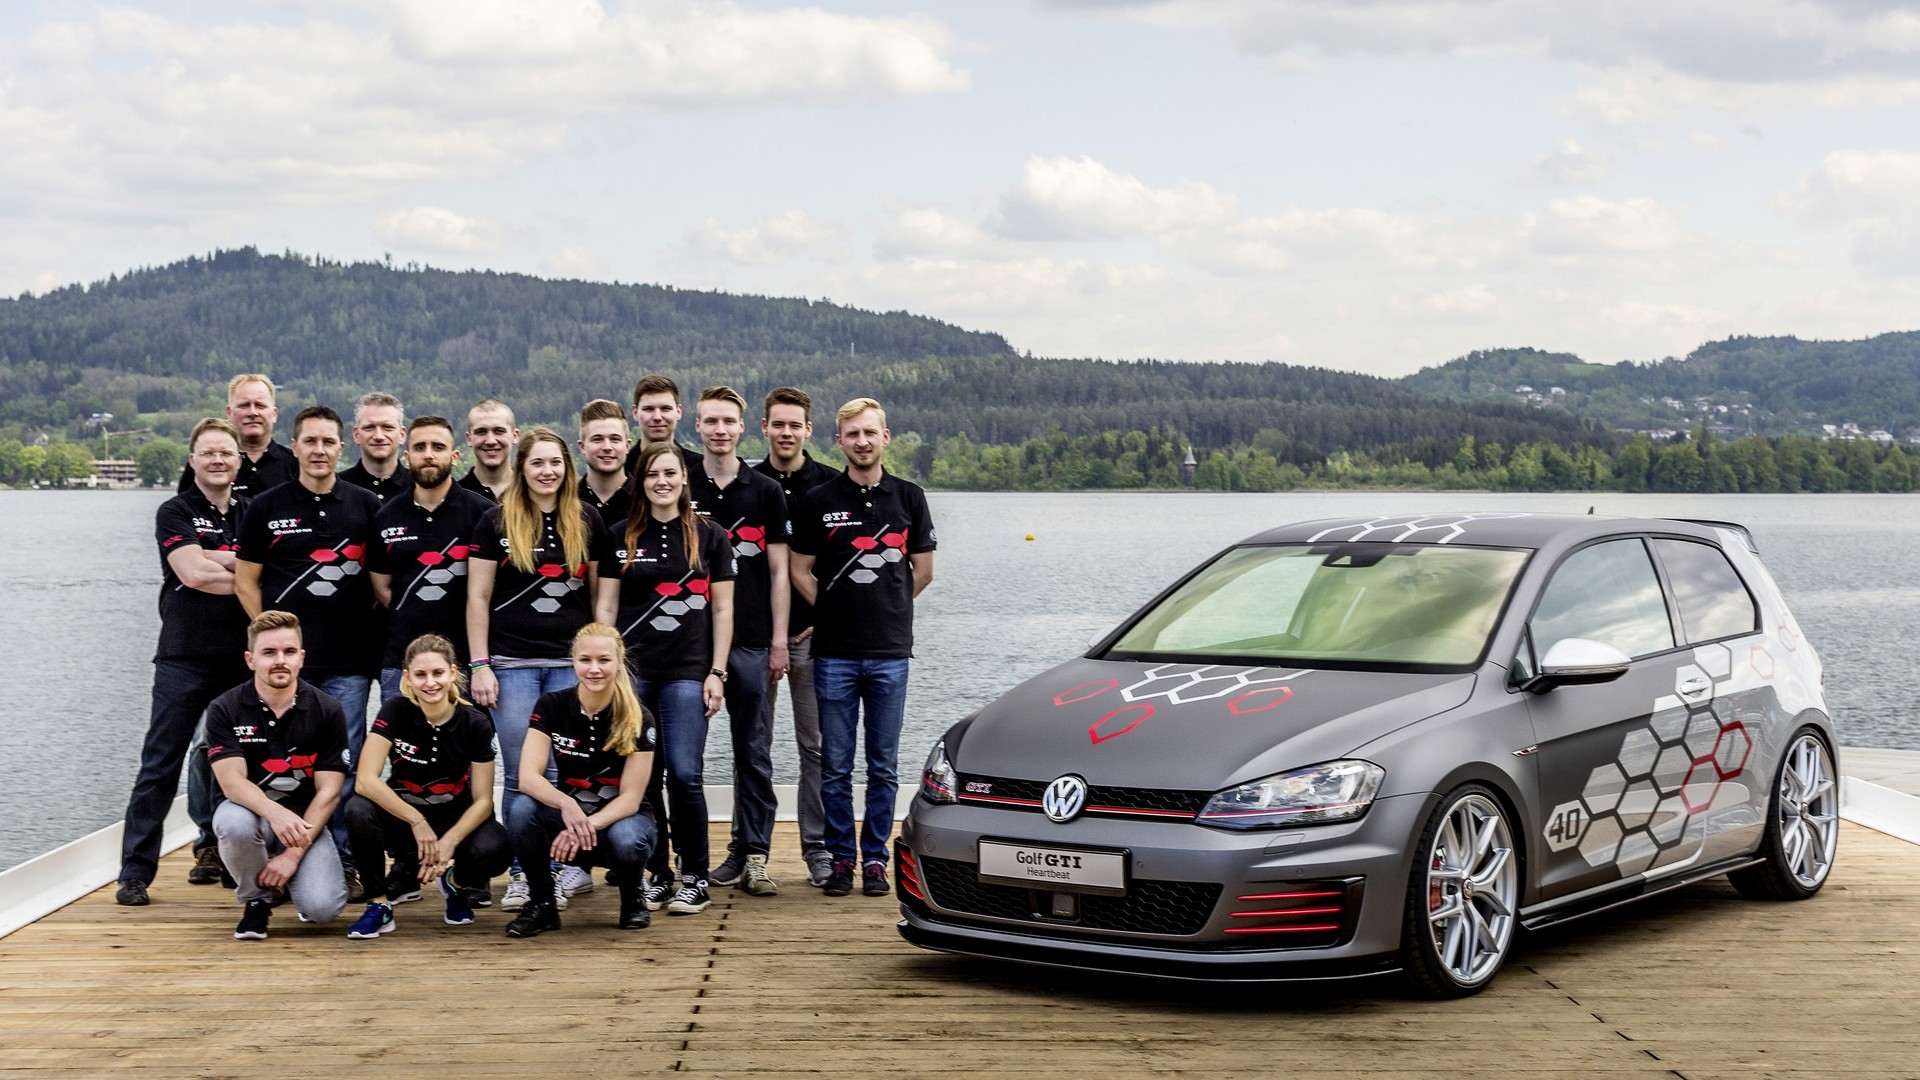 VW Apprentices Tease Special Golf GTI For Worthersee